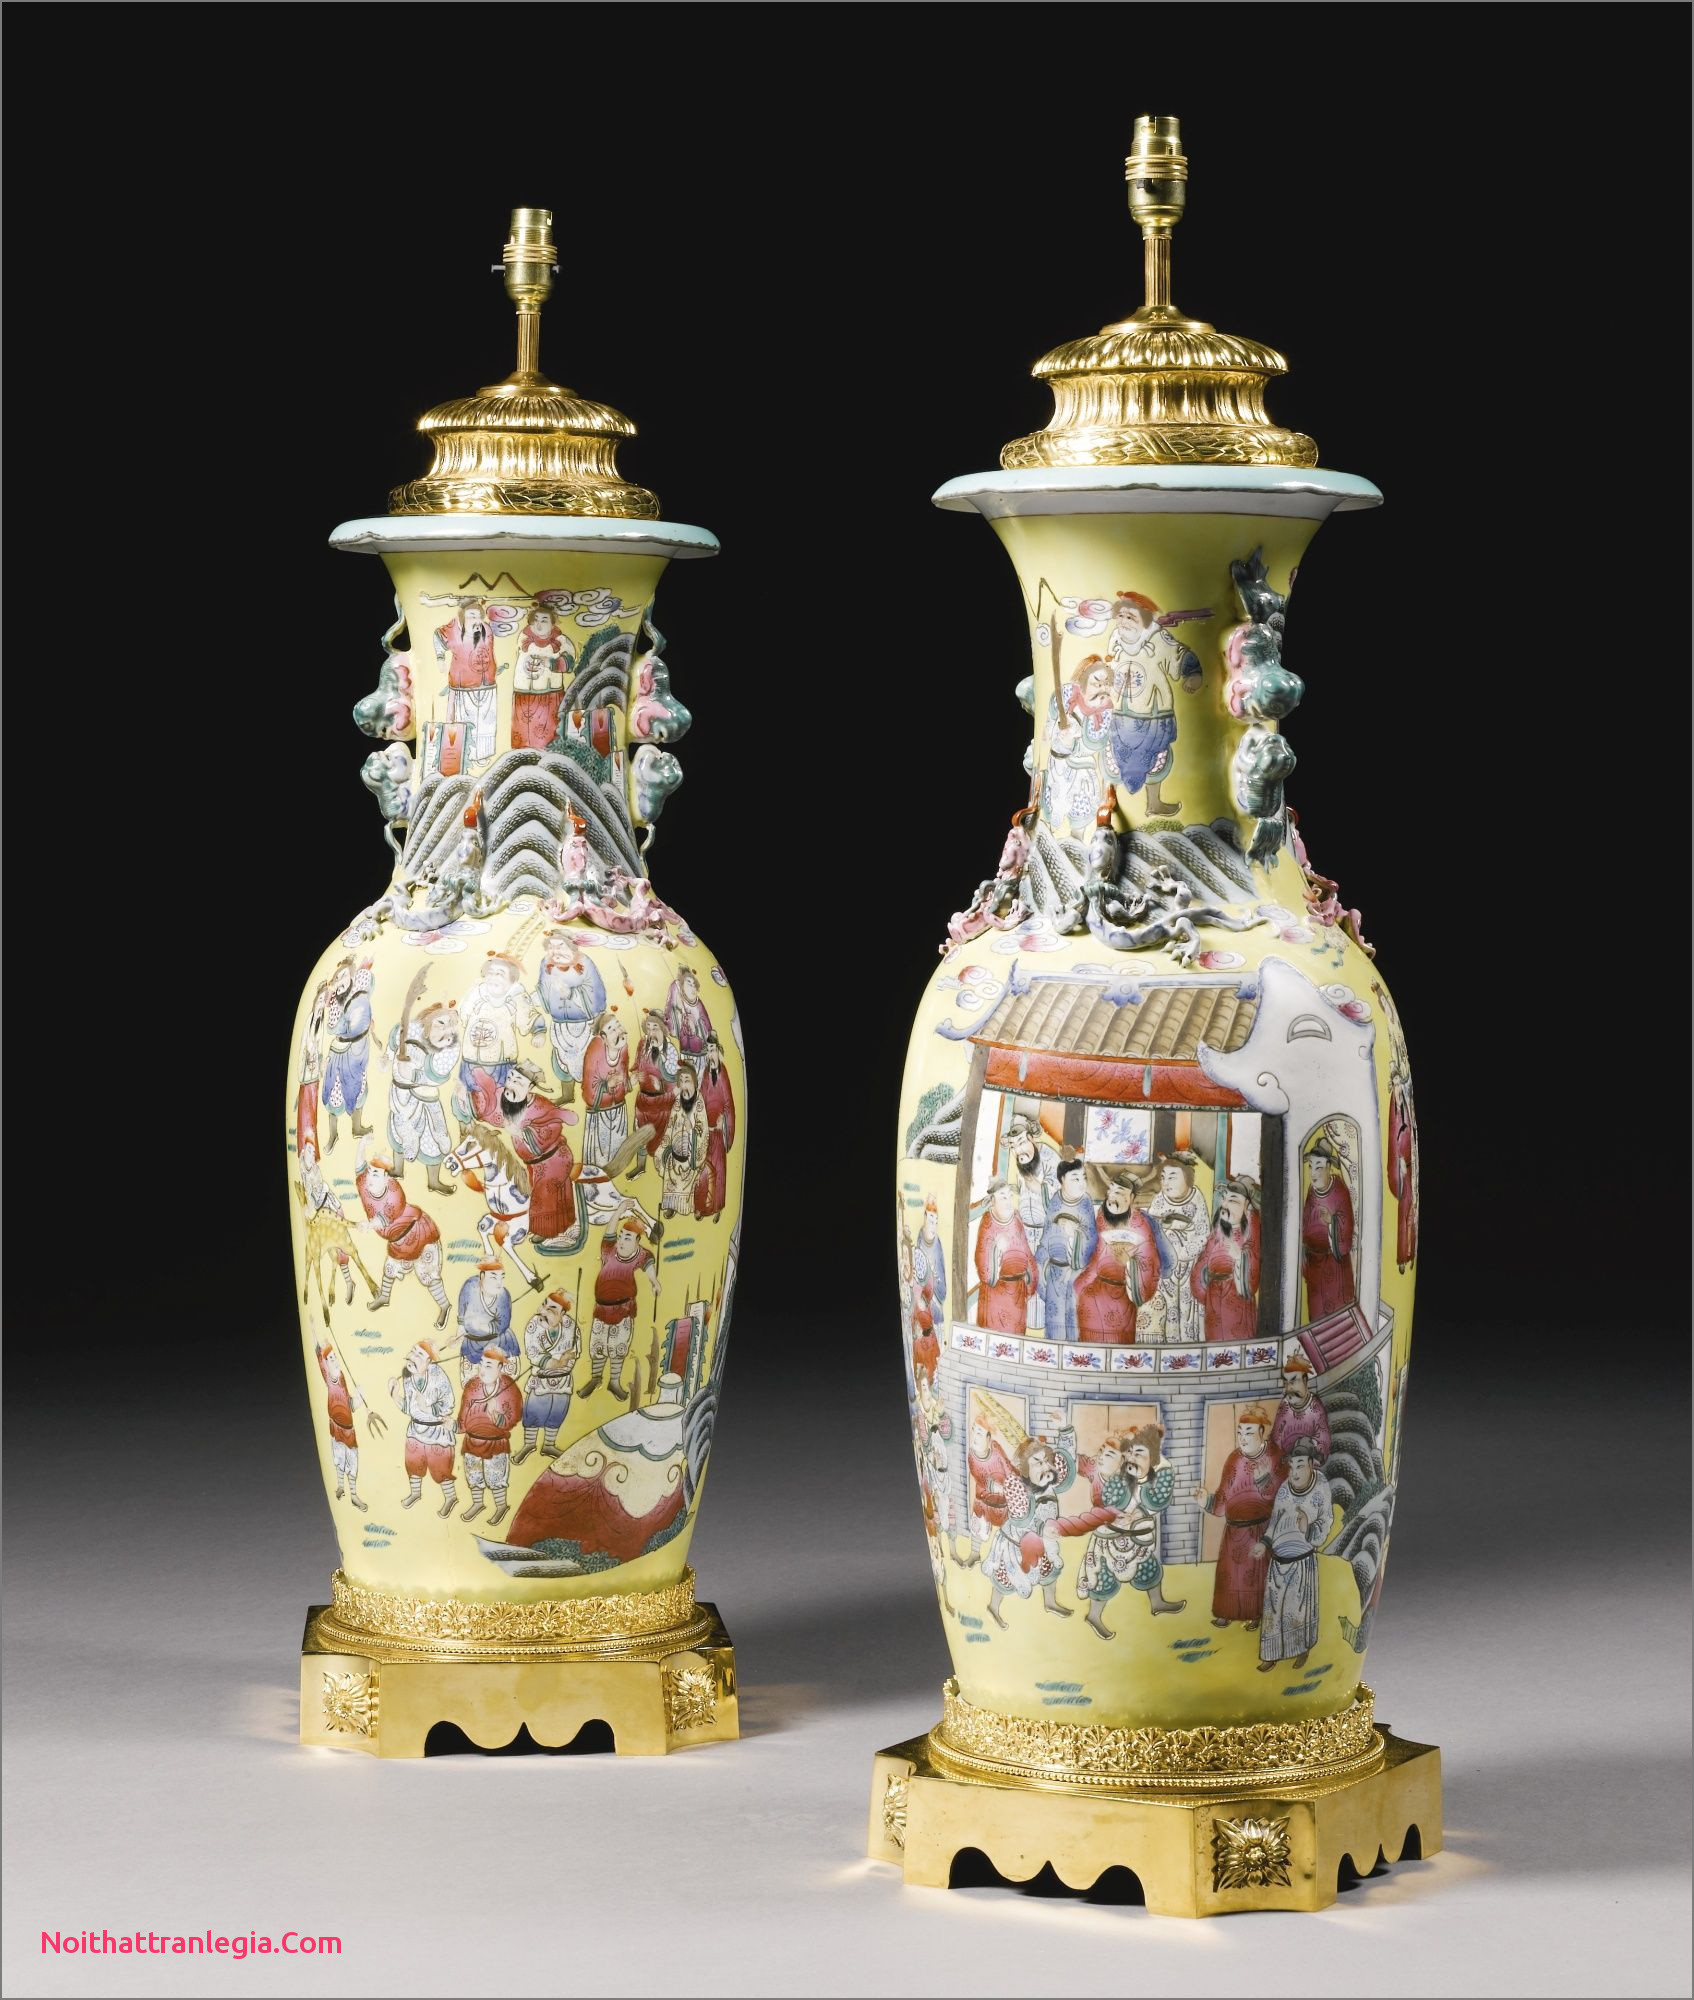 Fine China Vase Of 20 Chinese Antique Vase Noithattranlegia Vases Design Pertaining to A Pair Of Chinese Porcelain Vases sotheby S